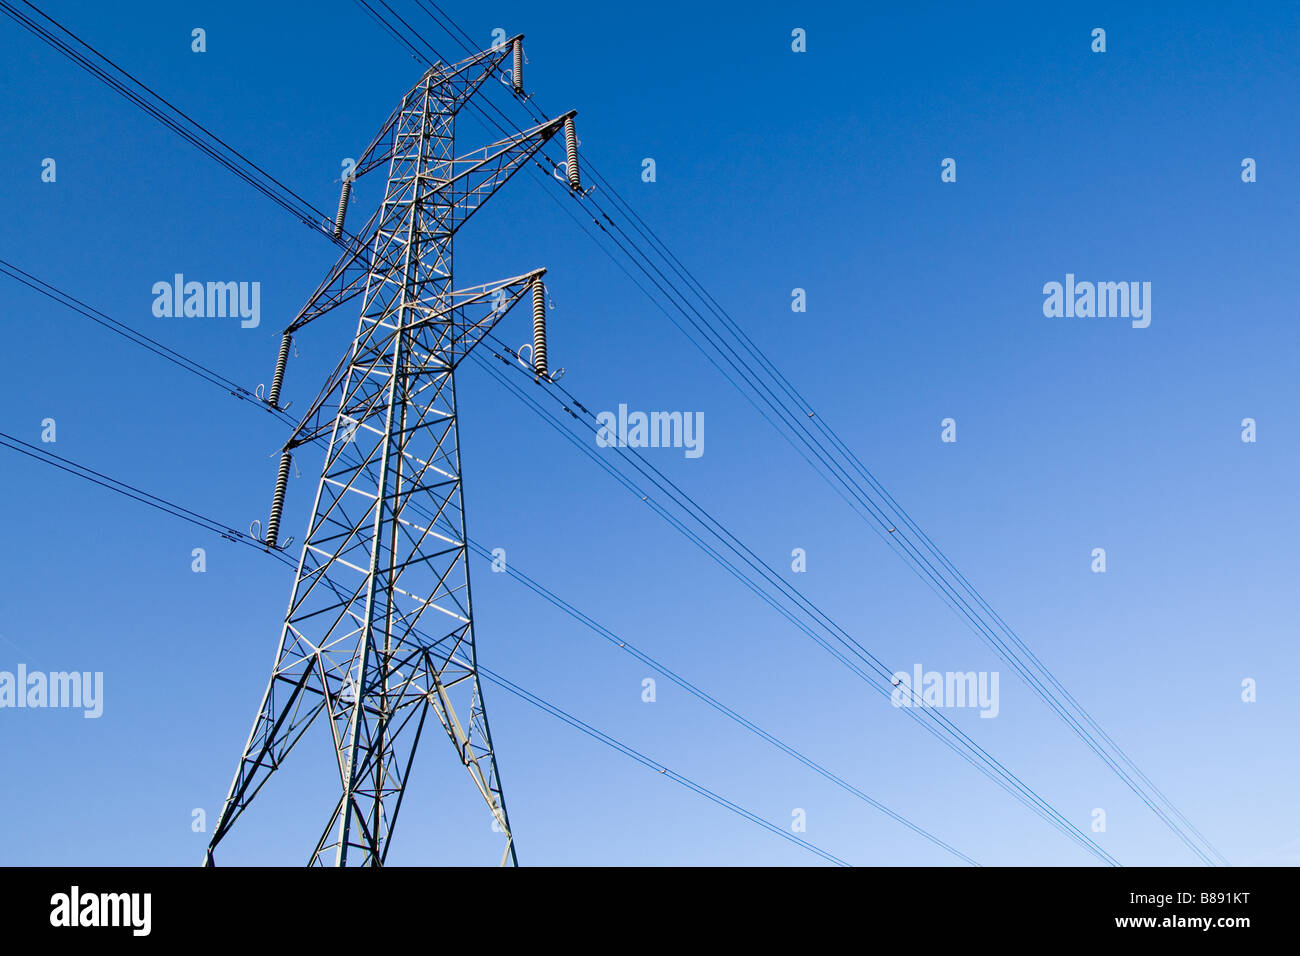 Electricity pylon with clear blue sky background - Stock Image